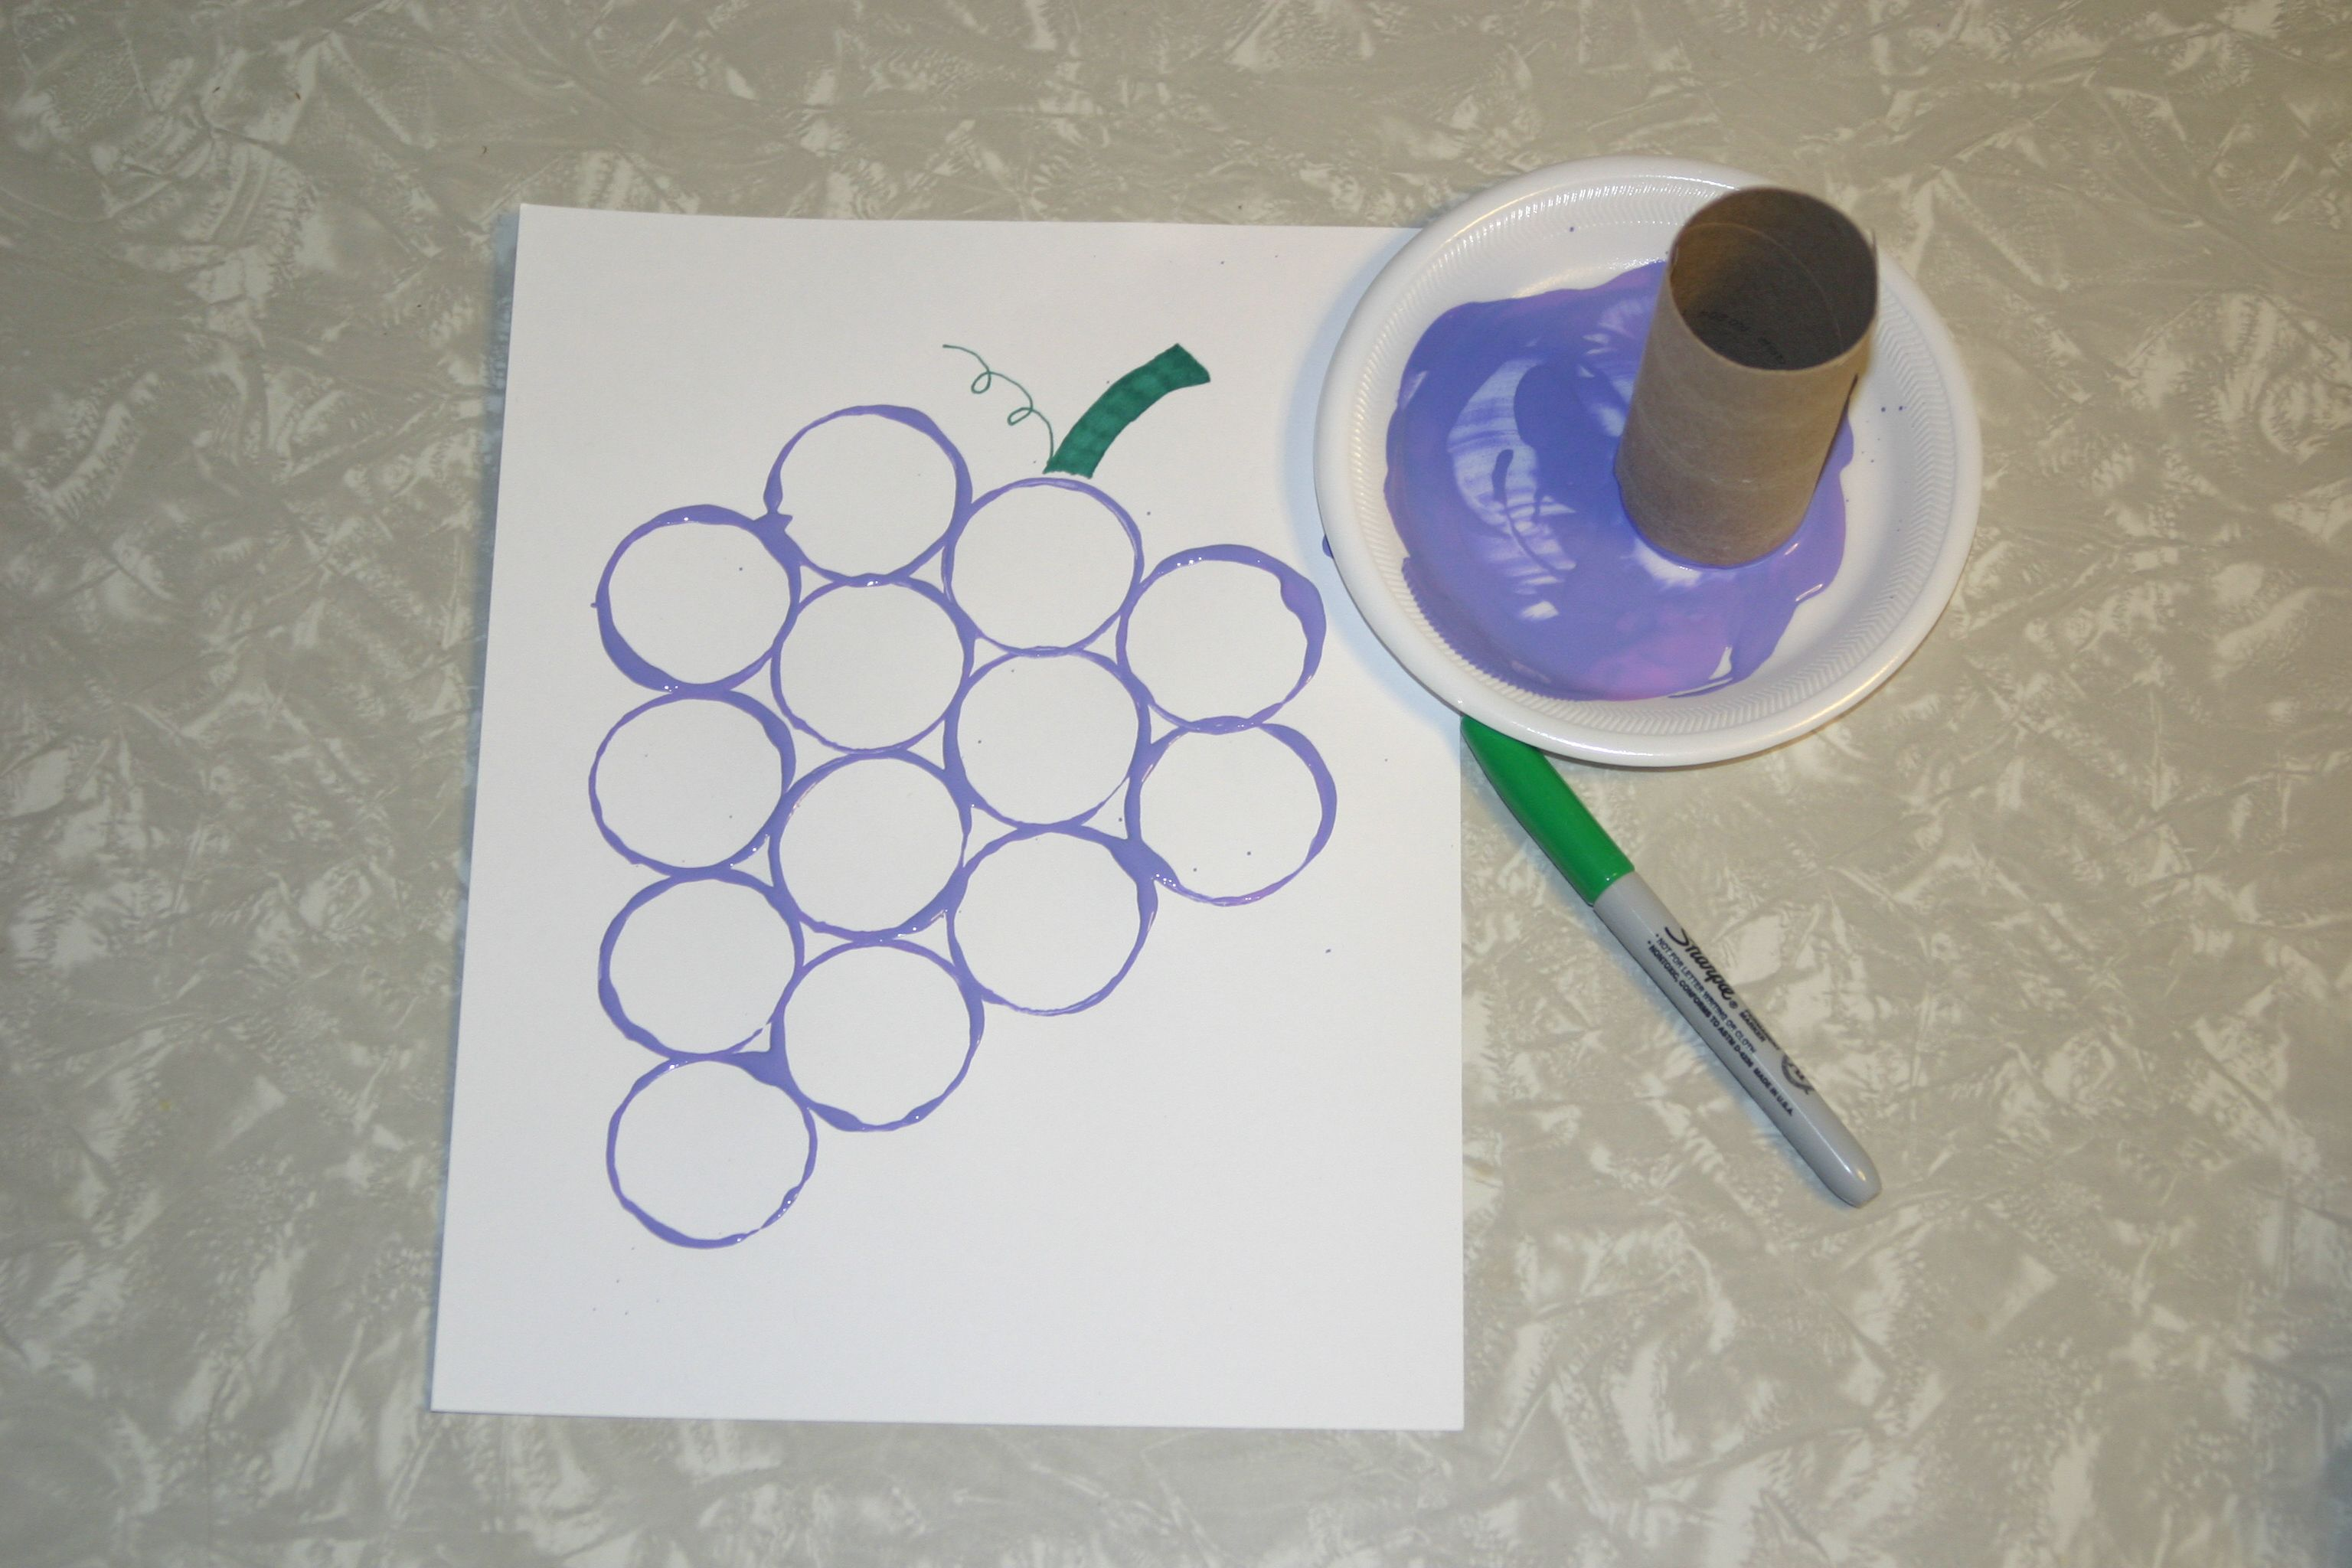 Learning colors art activities for preschool - Have Fun Learning About The Color Purple With This Purple Grape Craft